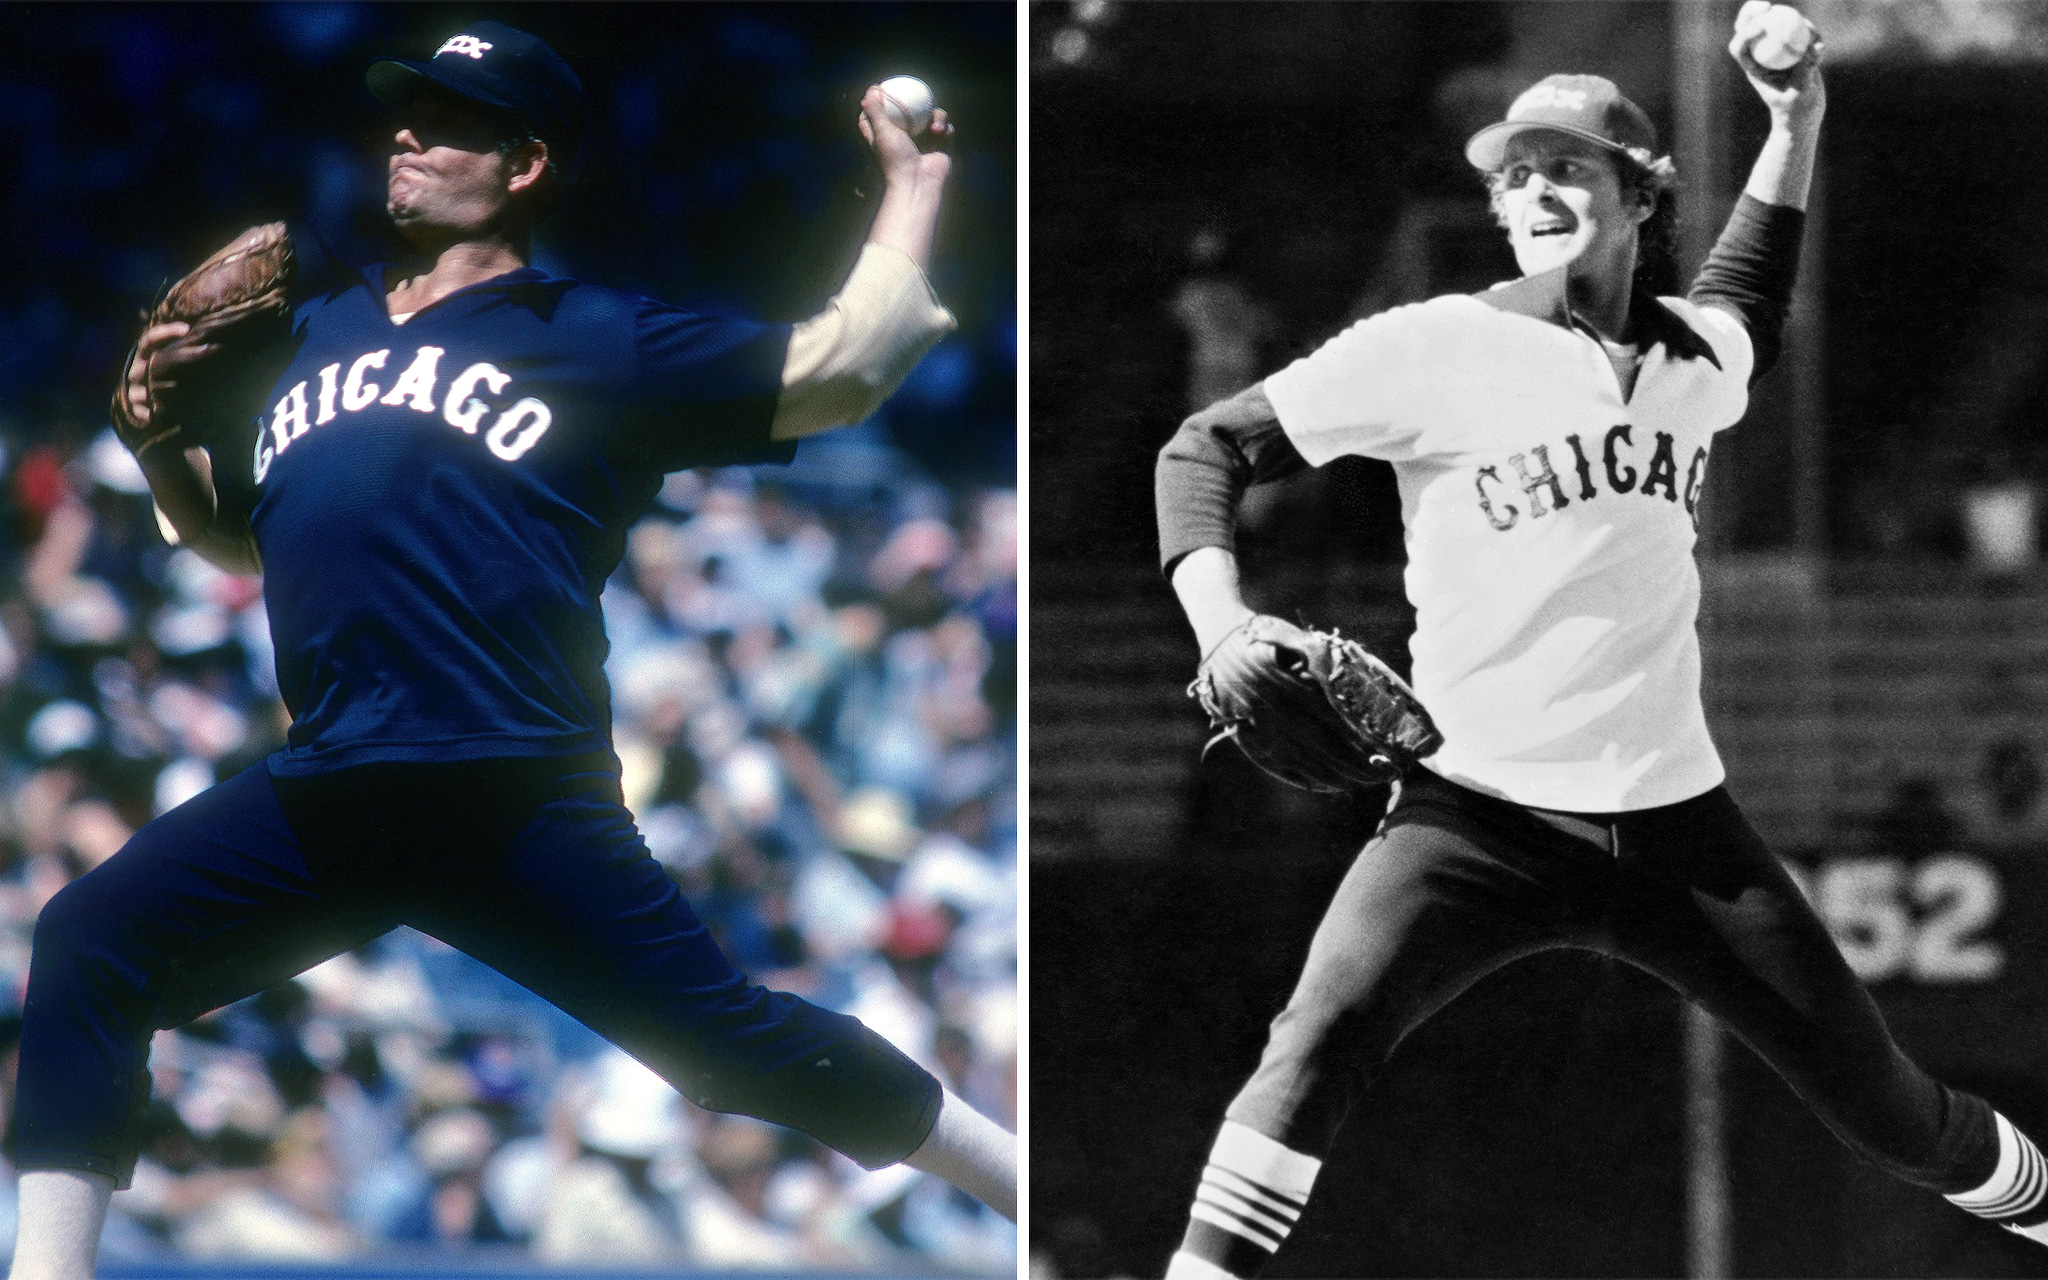 Late 1970s Chicago White Sox